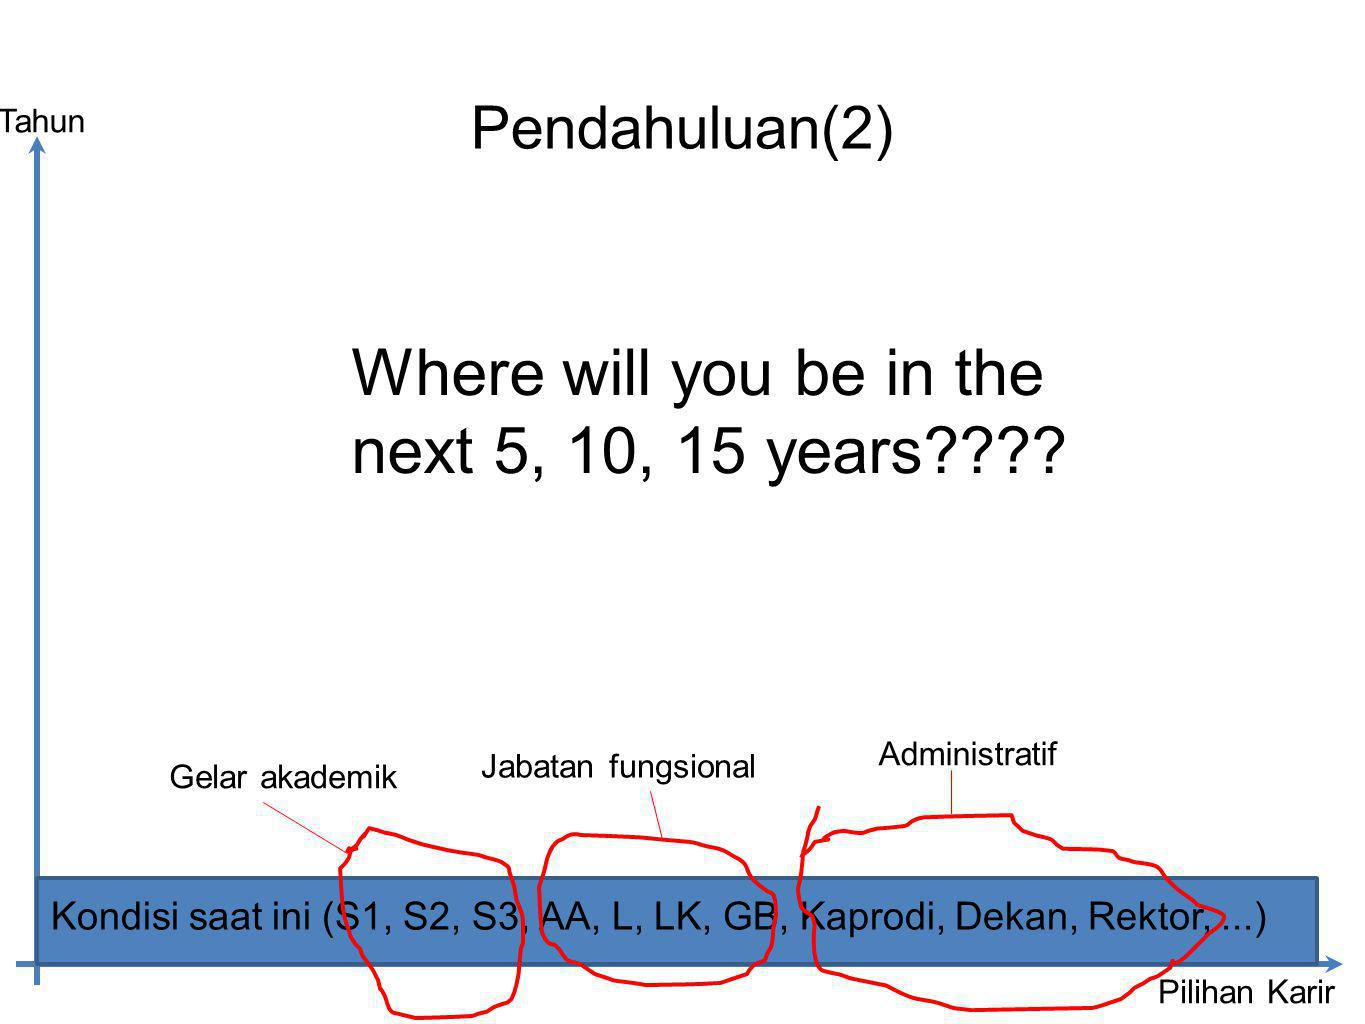 Where will you be in the next 5, 10, 15 years